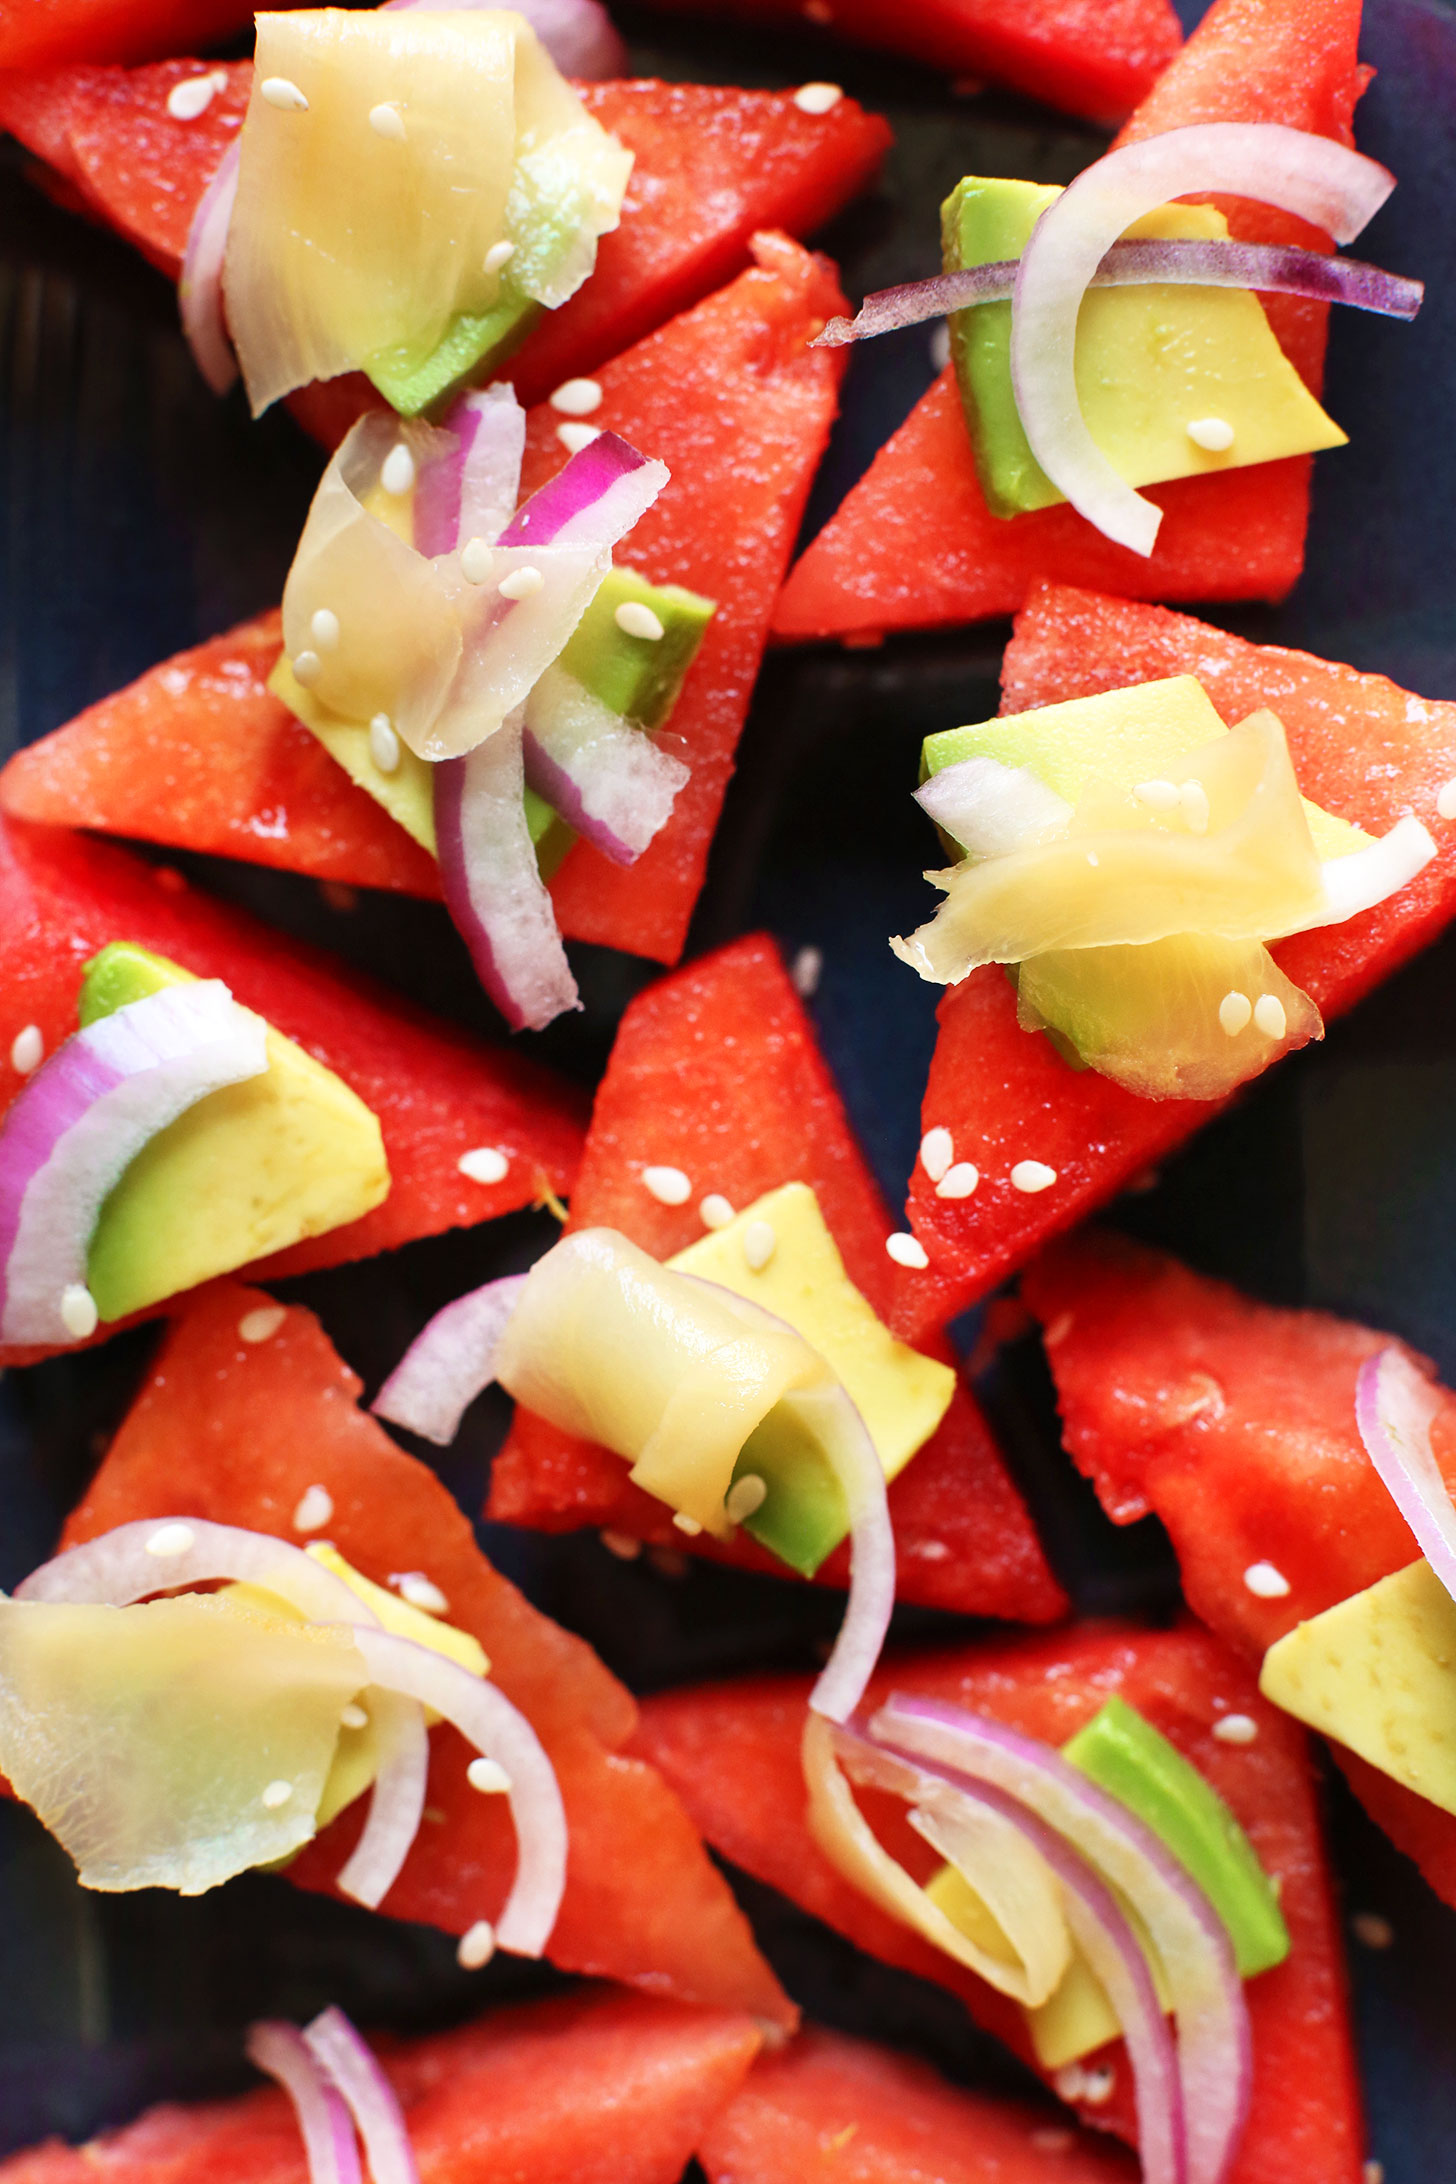 Platter with amazing Watermelon Sashimi for a plant-based appetizer recipe